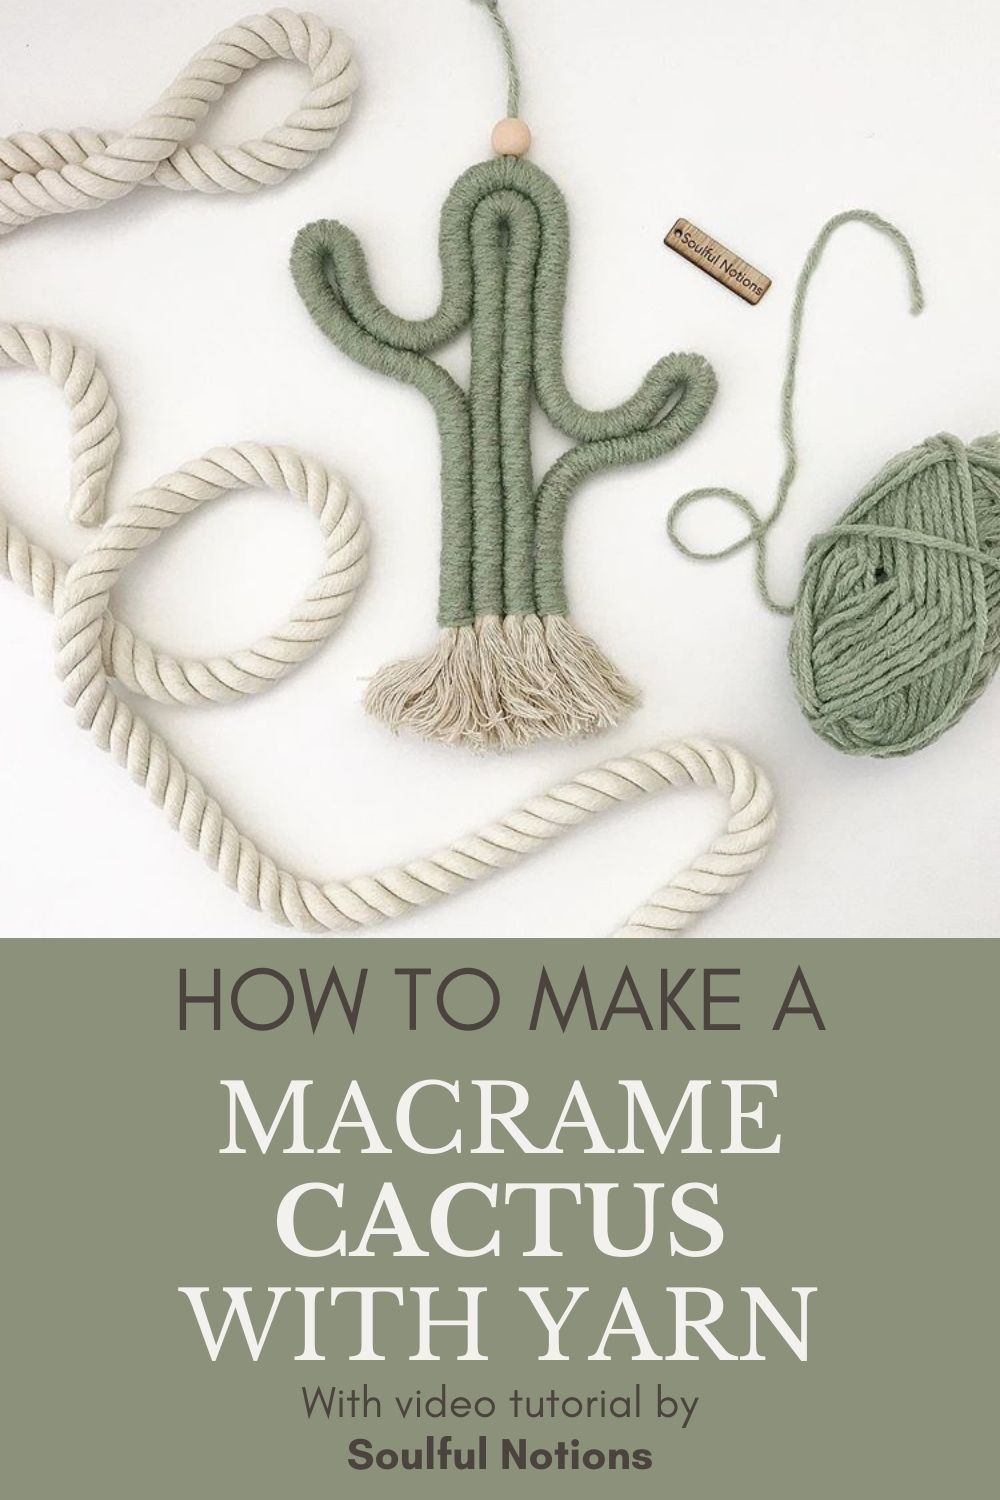 How to Make a Macrame Cactus - Easy Video Tutorial by Soulful Notions